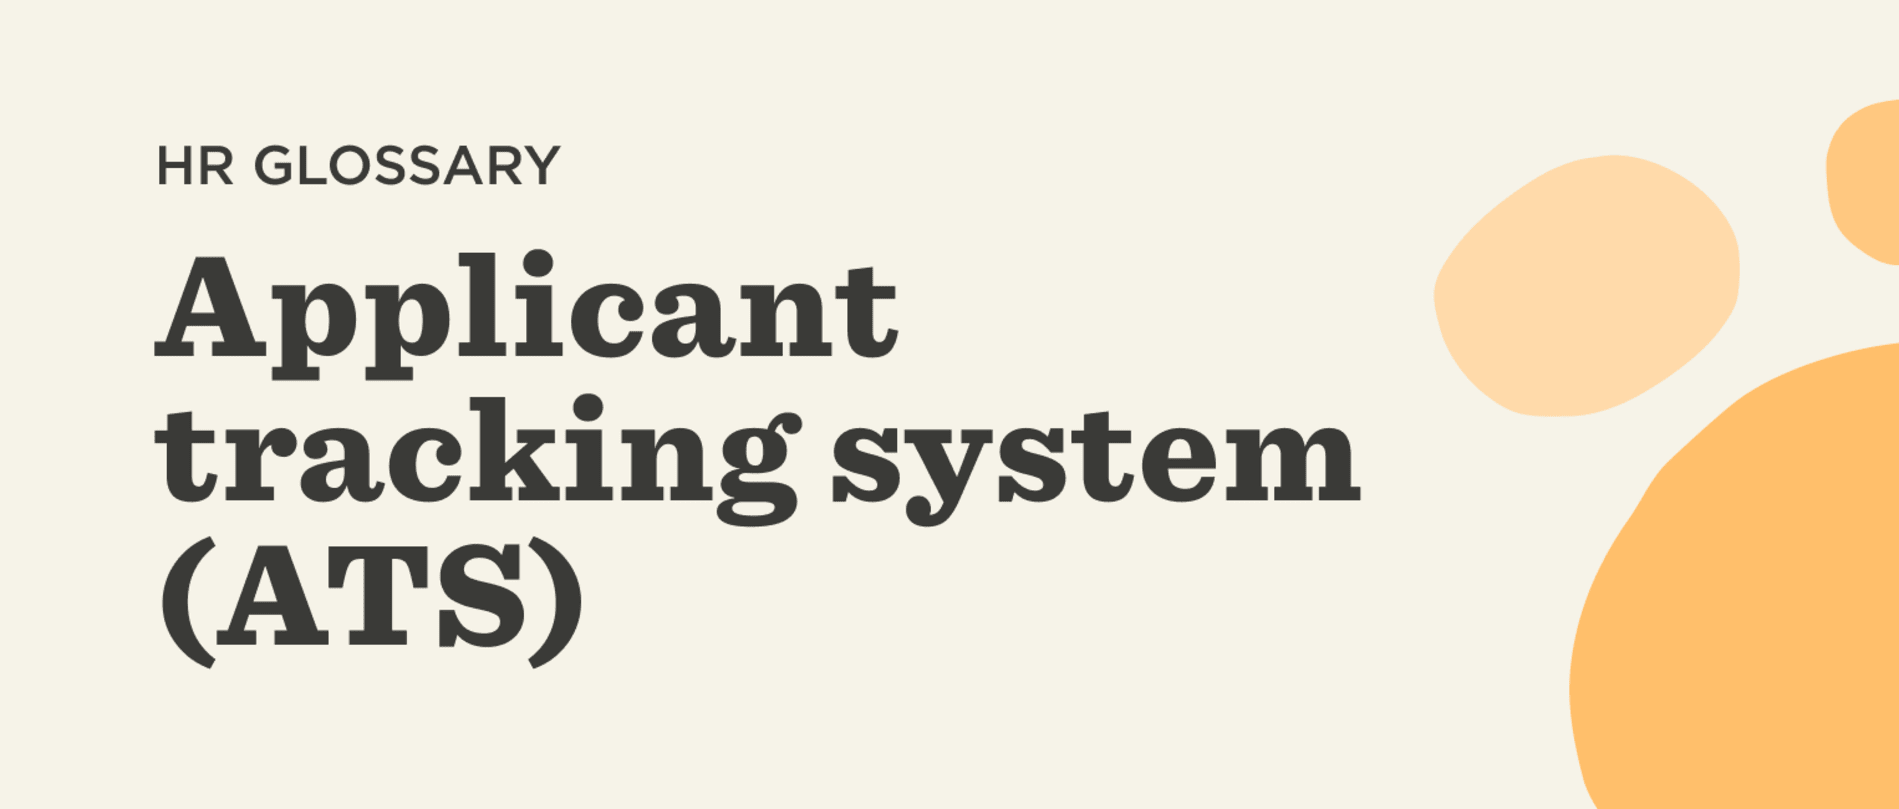 What is an applicant tracking system? - Applicant-tracking-system-Glossary-banner-1.png